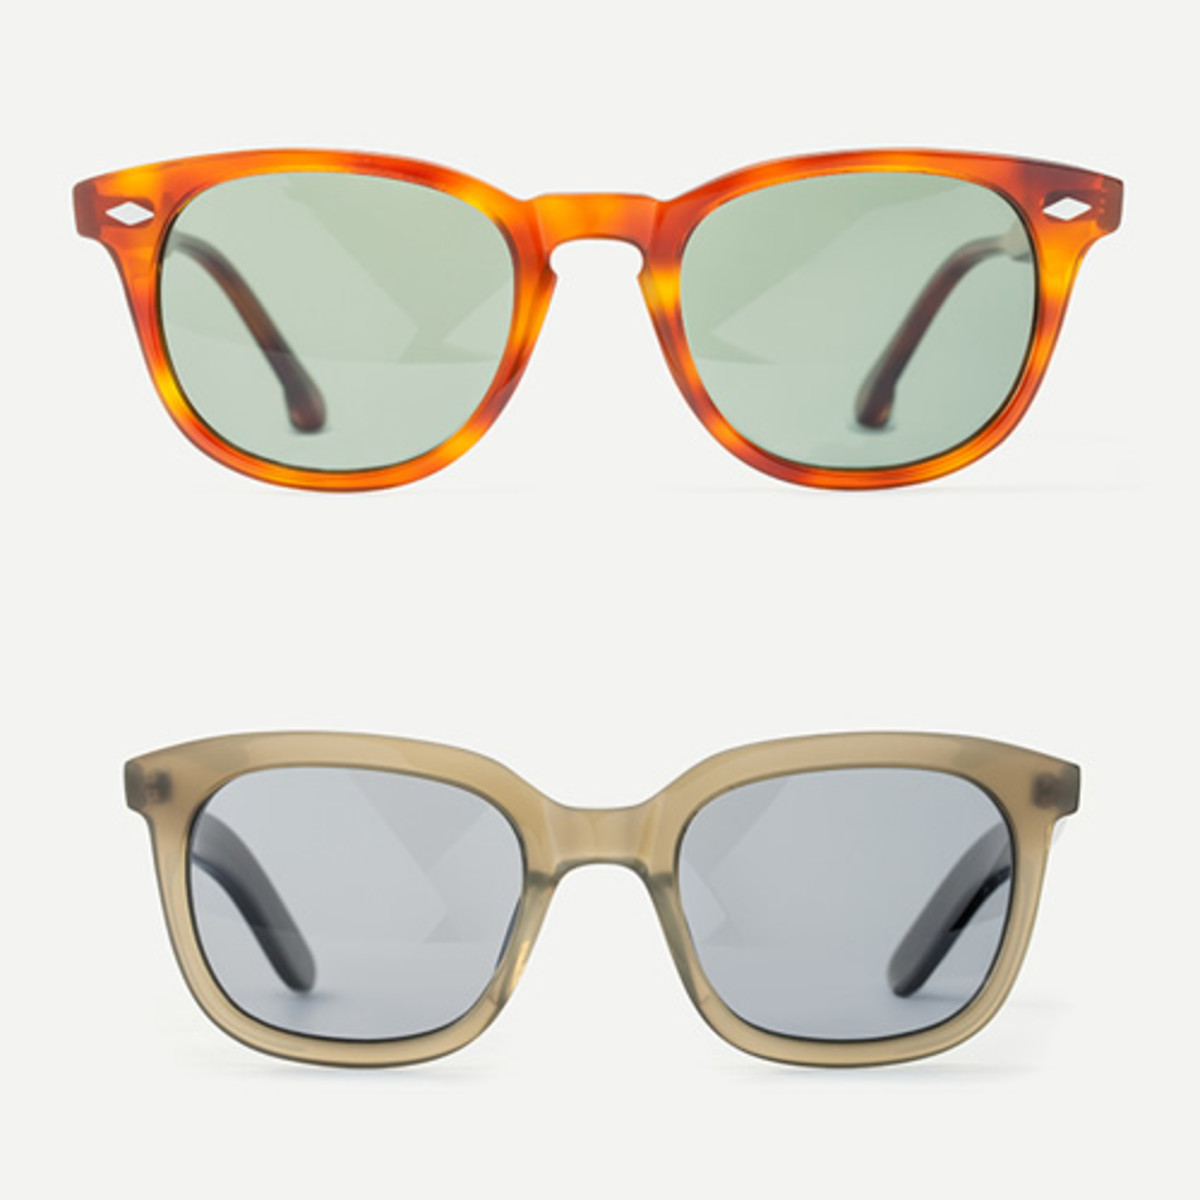 965ab75f4cf5d Pricing is  145 for sunglasses ( 245 w  prescription) and  195 for the  optical models with the prescription lens included. Steven Alan